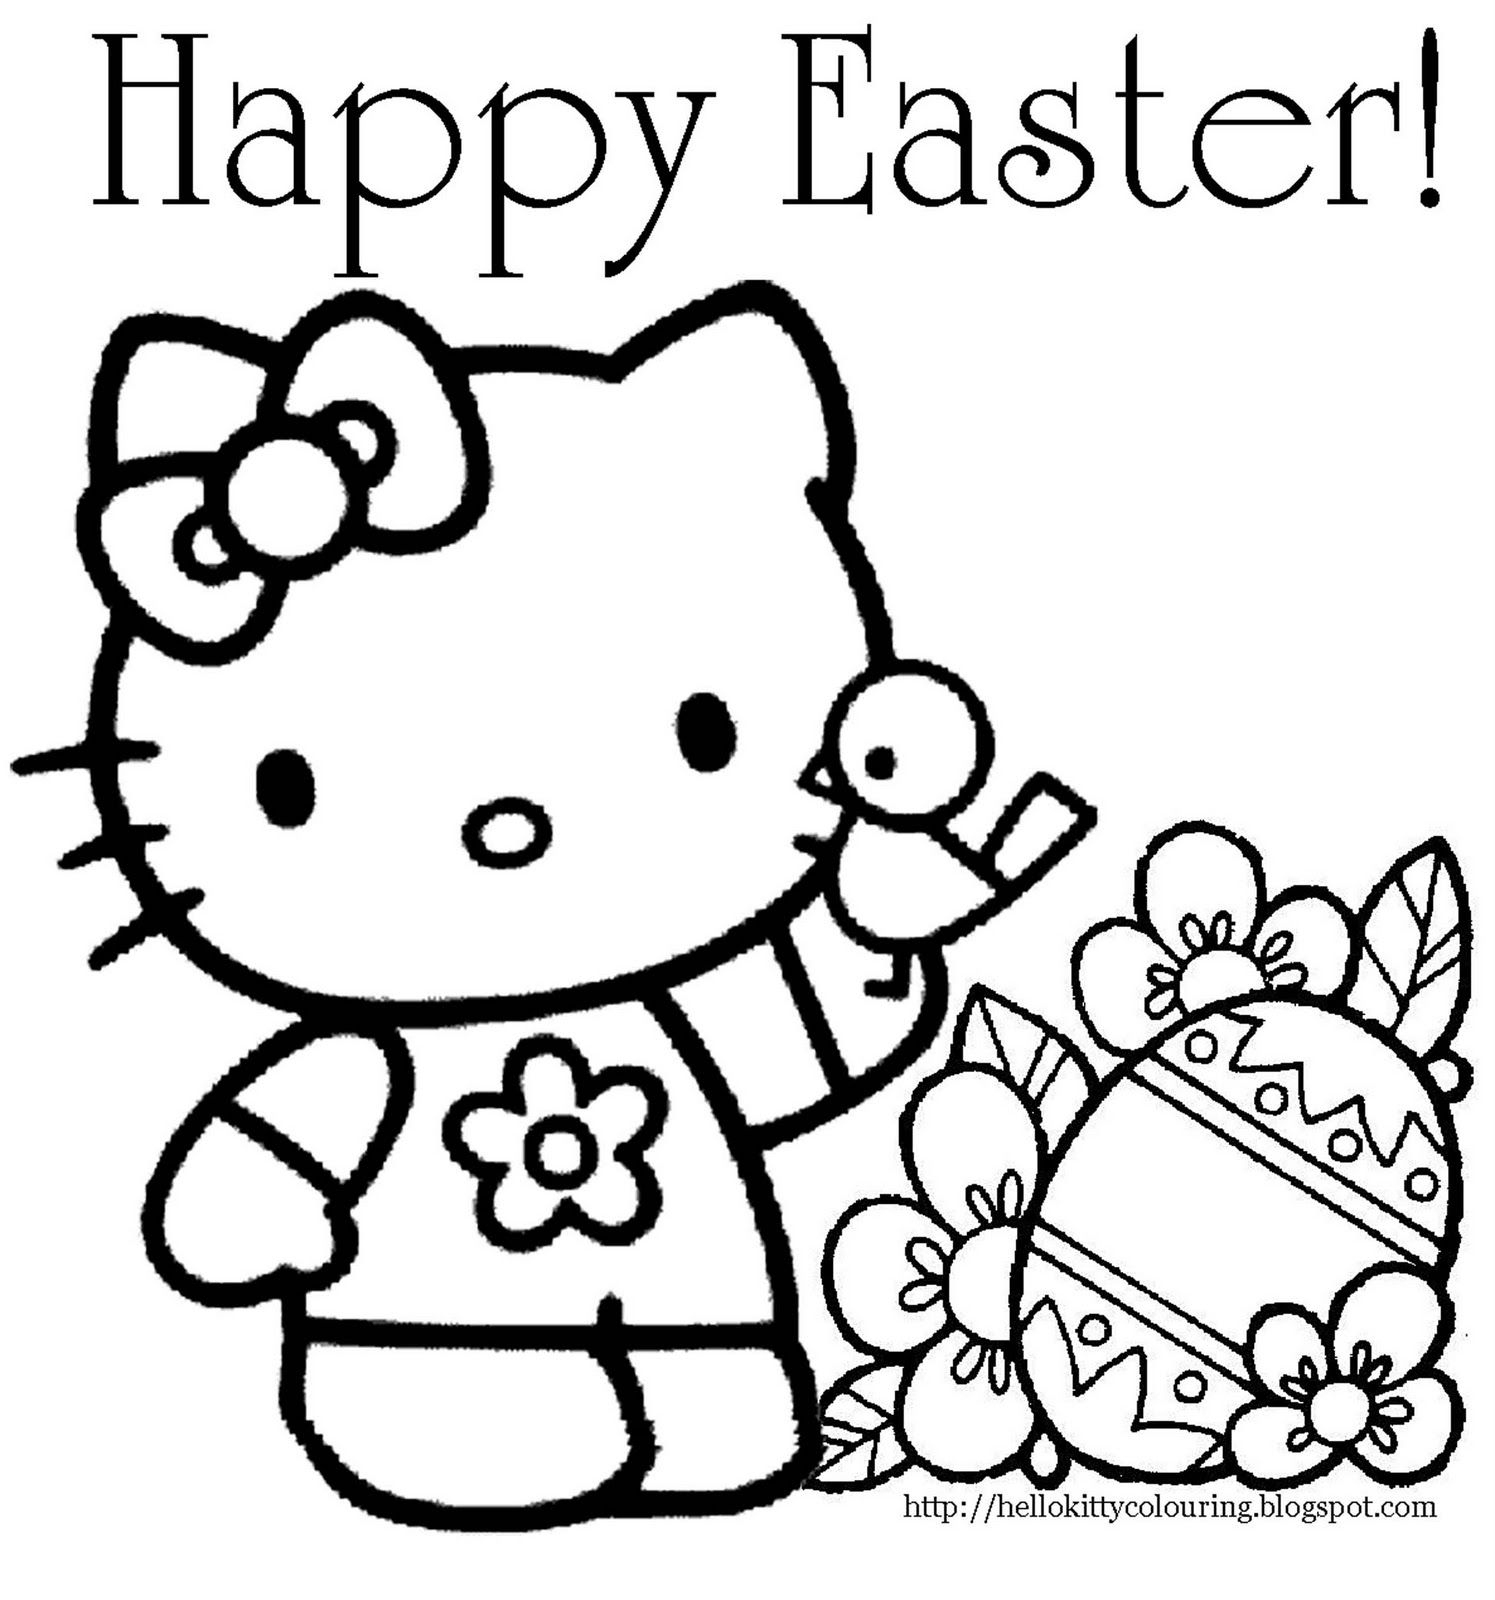 Hilla Kitte Coloriing | Hello Kitty Easter Coloring Page | Books - Free Easter Color Pages Printable